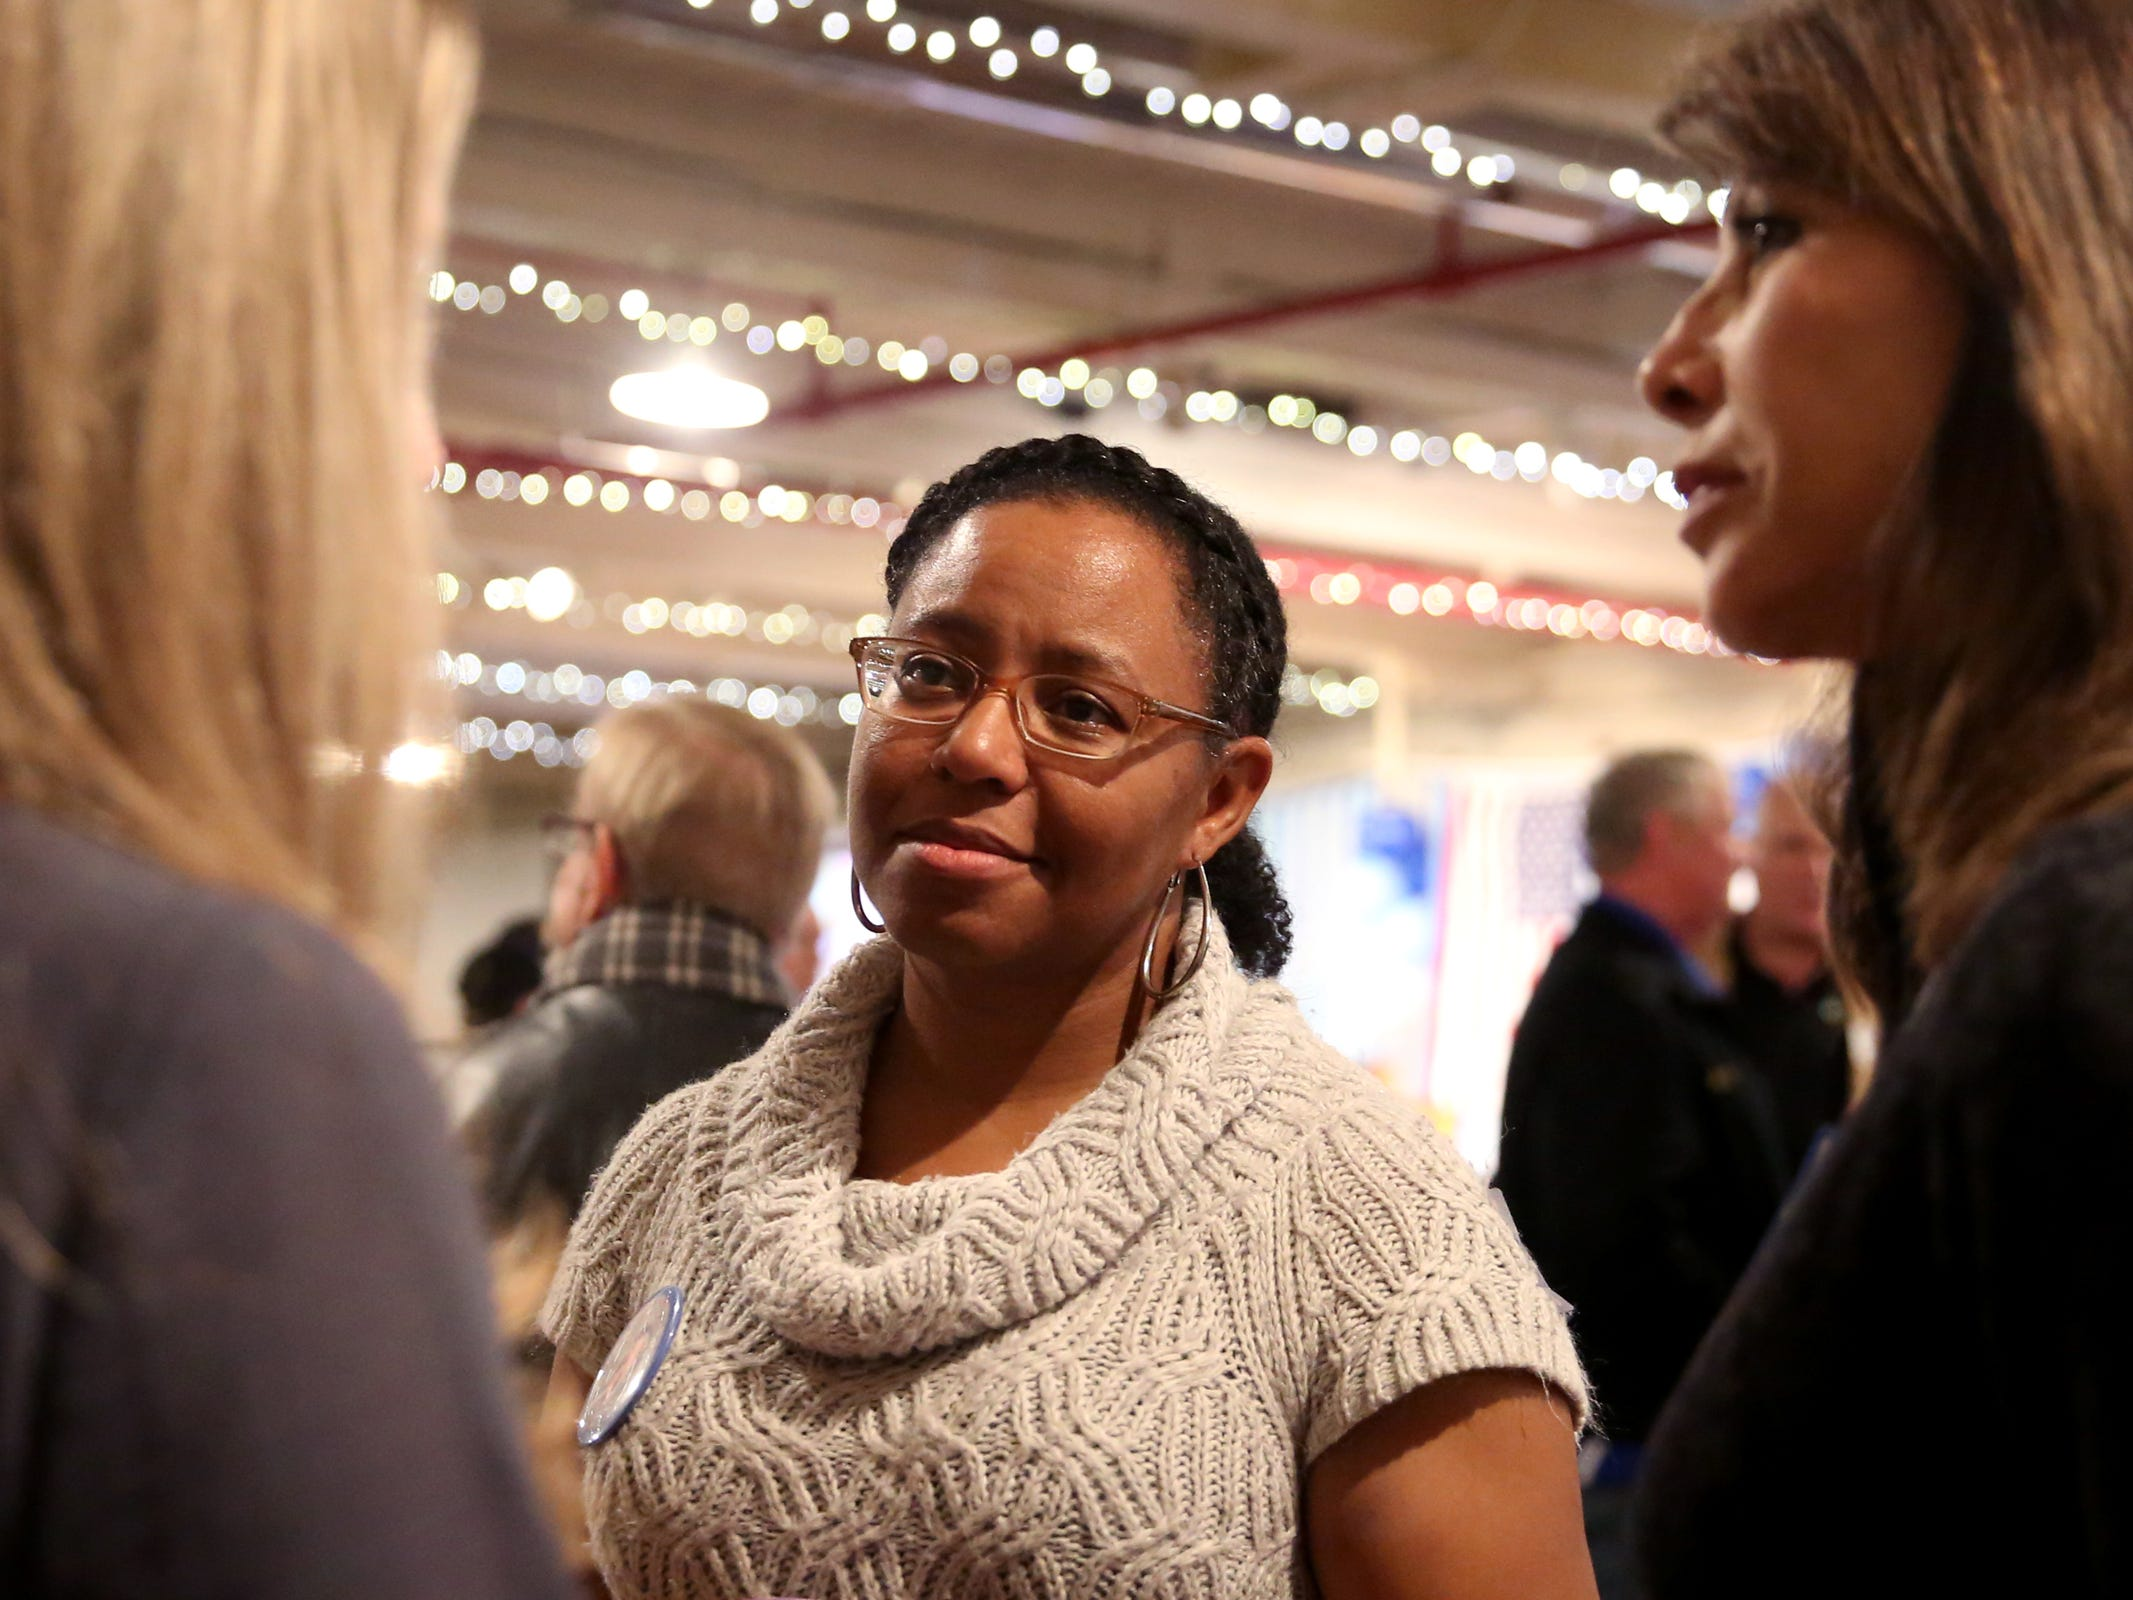 Shelaswau Crier, a candidate for Marion County Commissioner, speaks with supporters during an election night party hosted by Marion County Democrats and Polk County Democrats at the Willamette Heritage Center in Salem on Tuesday, Nov. 6, 2018.